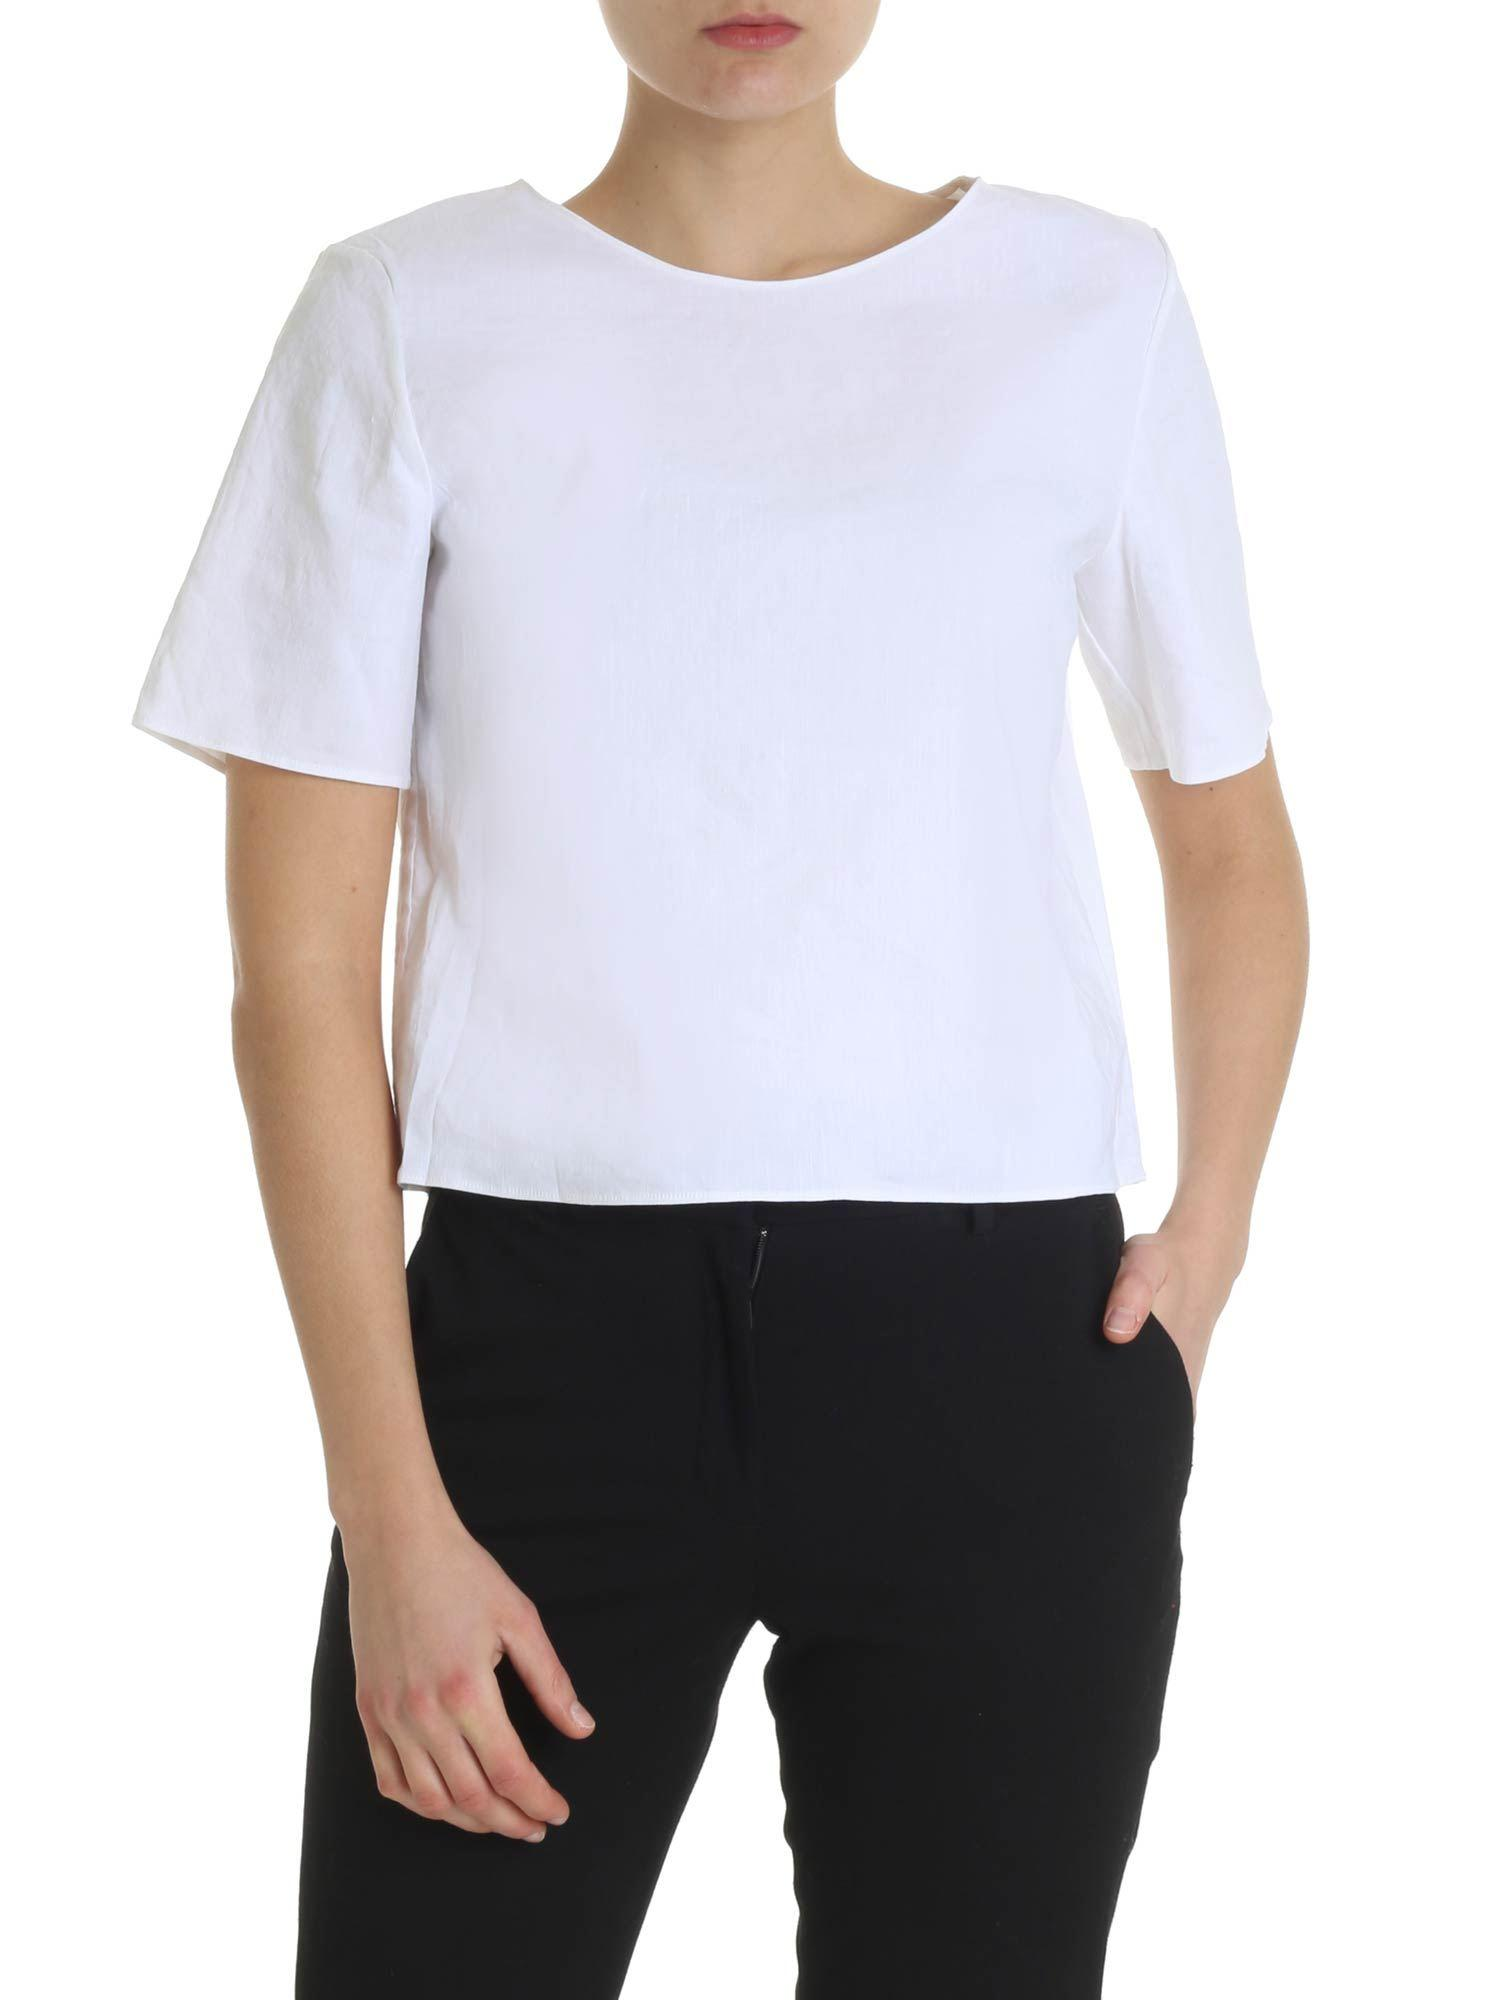 9dd7d55d039a Theory Semi-transparent White T-shirt in White - Lyst